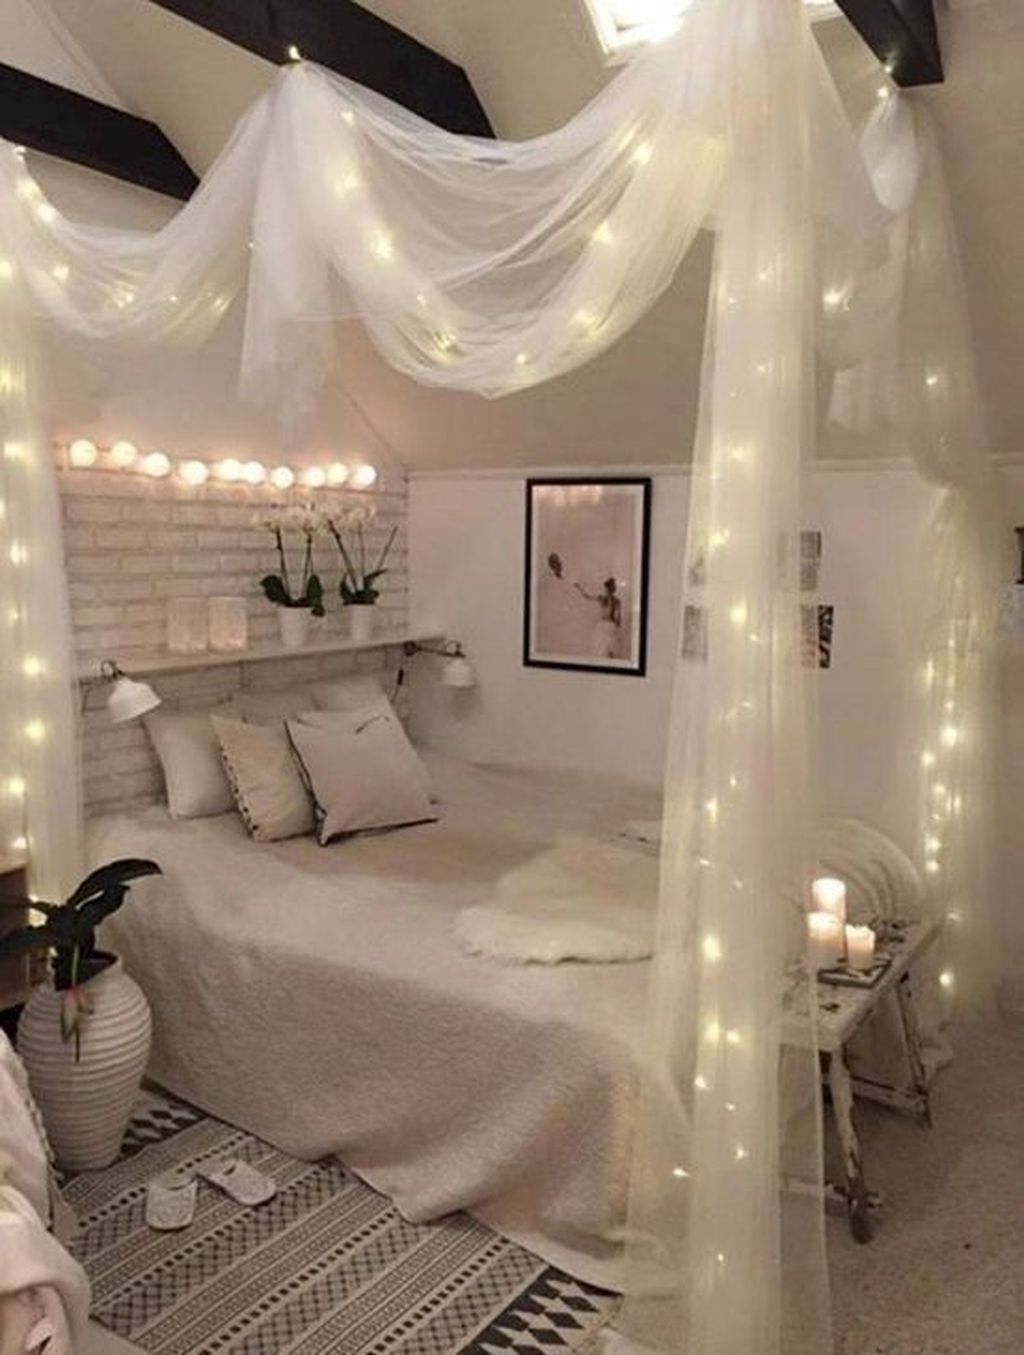 How To Decorate My Bedroom With Simple Things Internal Home Design Room Ideas Bedroom Girl Bedroom Decor Diy Home Decor Bedroom